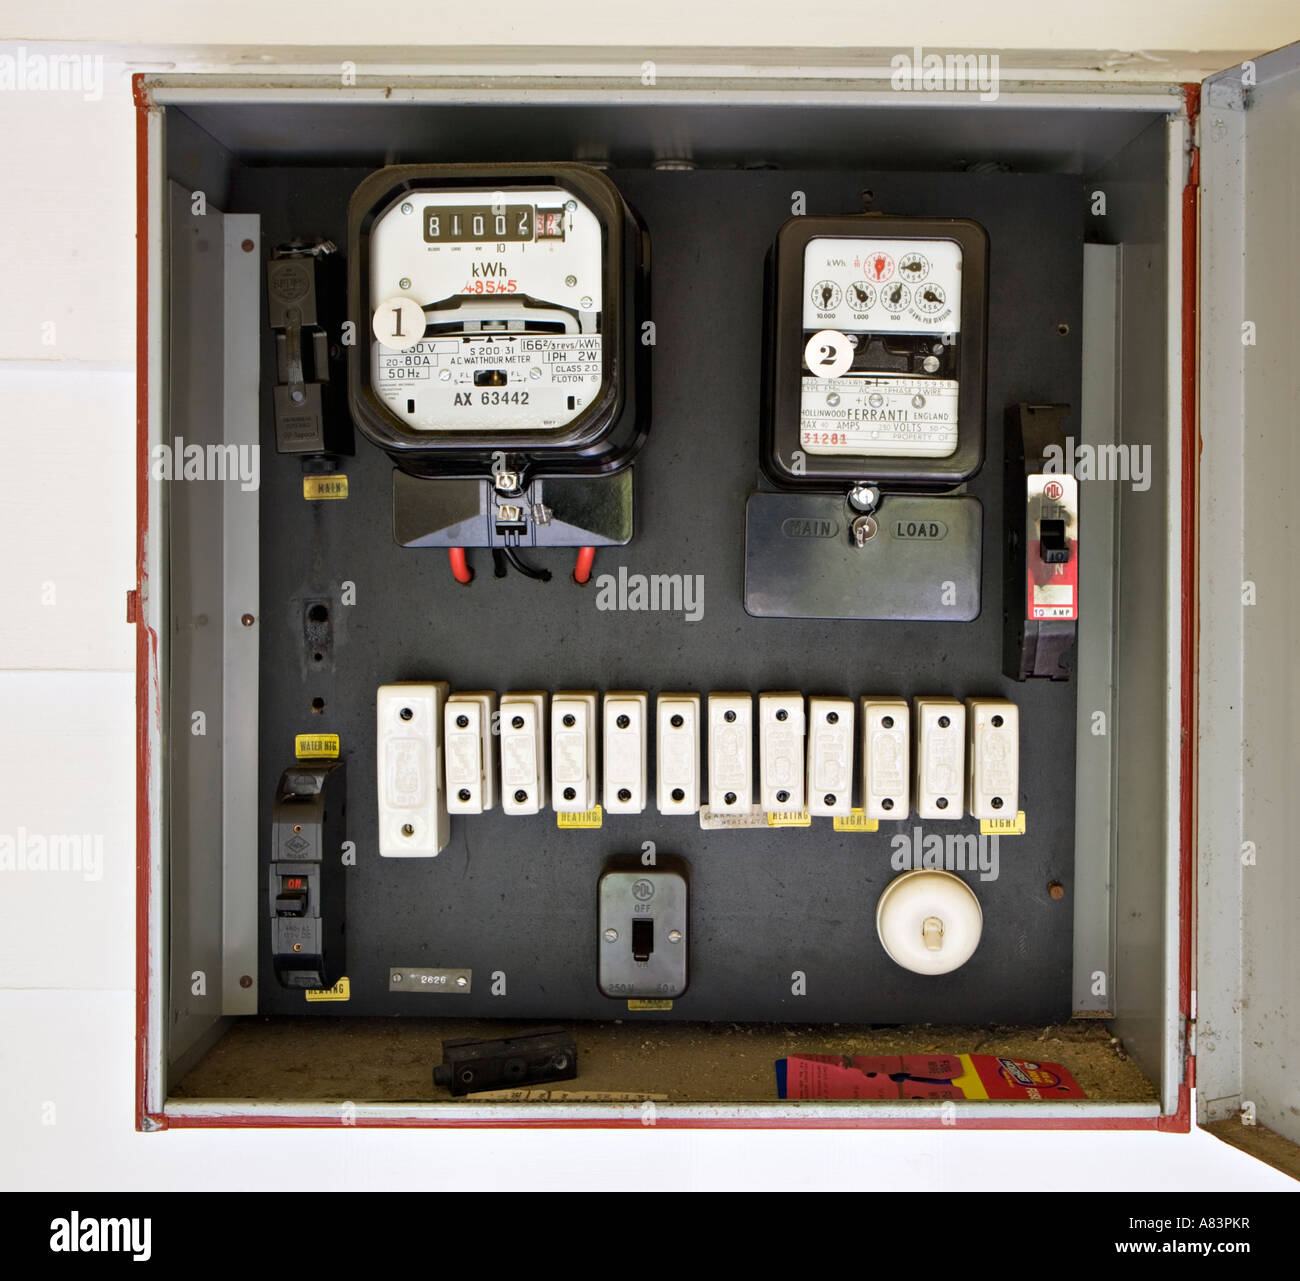 electricity meter in box with old style fuses, circa 1962, in new how to replace a fuse box in a house electricity meter in box with old style fuses, circa 1962, in new zealand home